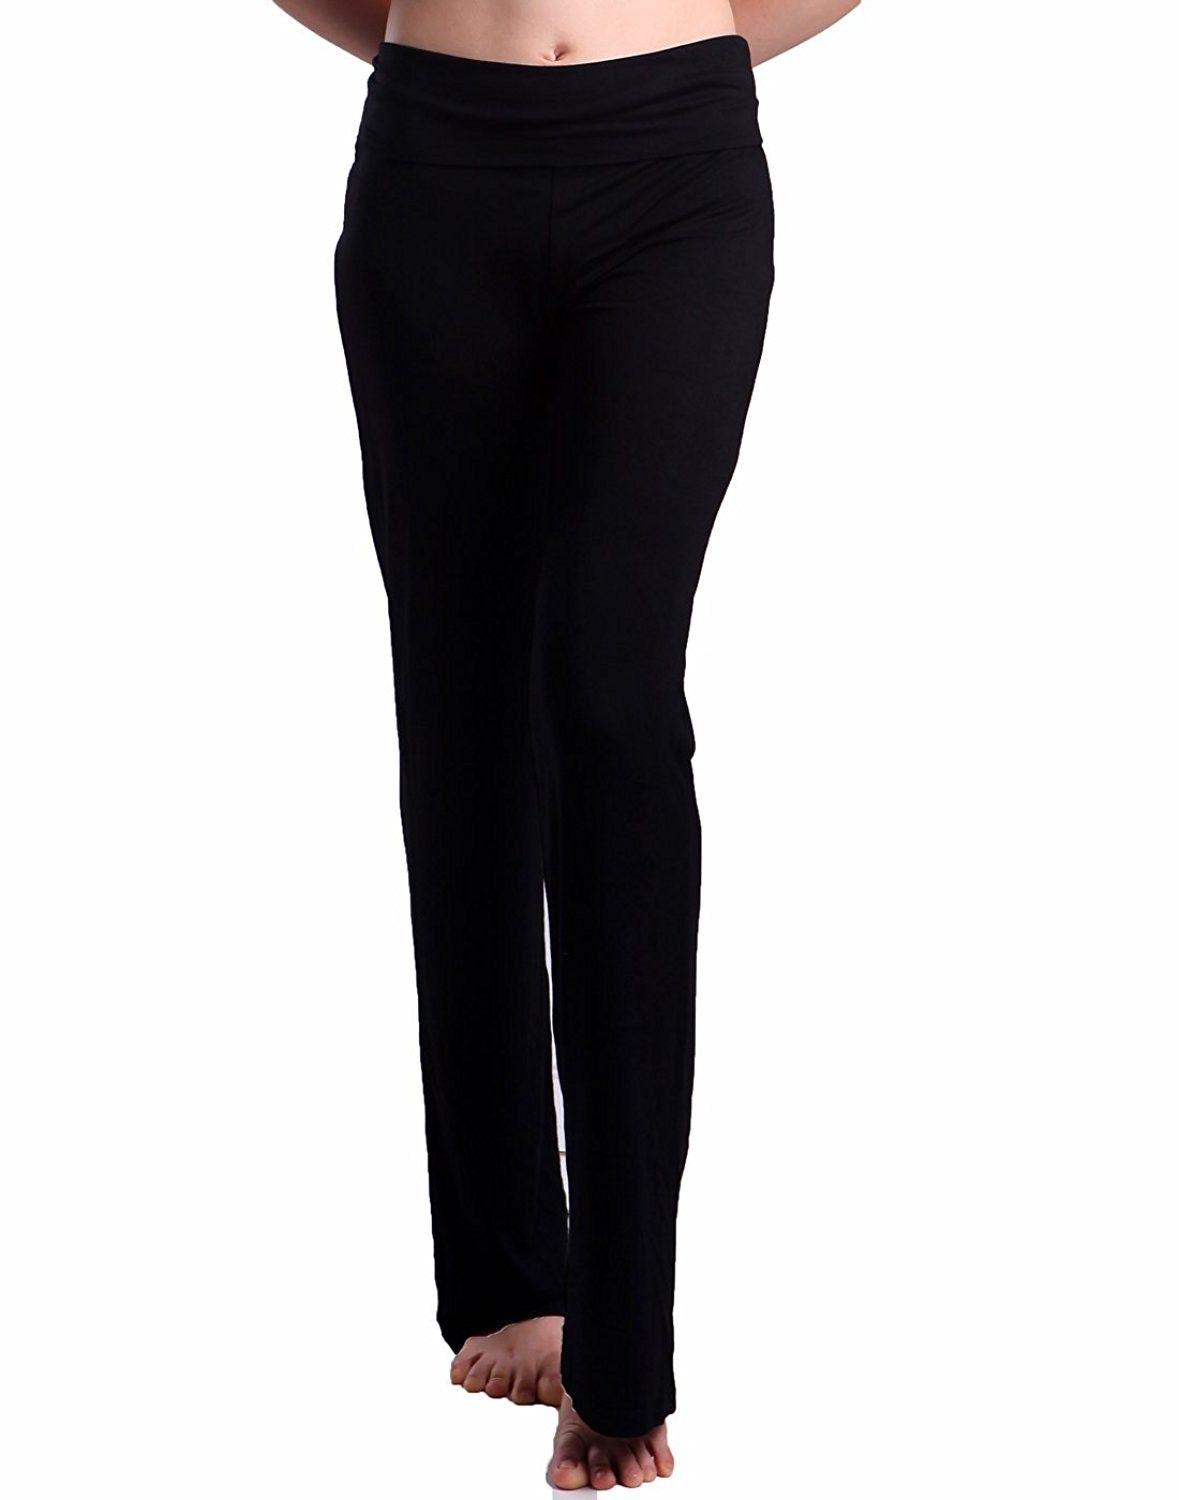 f105817888e6e Women's Clothing, Leggings, Women's Color Block Fold Over Waist Yoga Pants  Flare Leg Workout Leggings - Black - CP12FOUGI53 #Leggings #fashion #sexy  #style ...